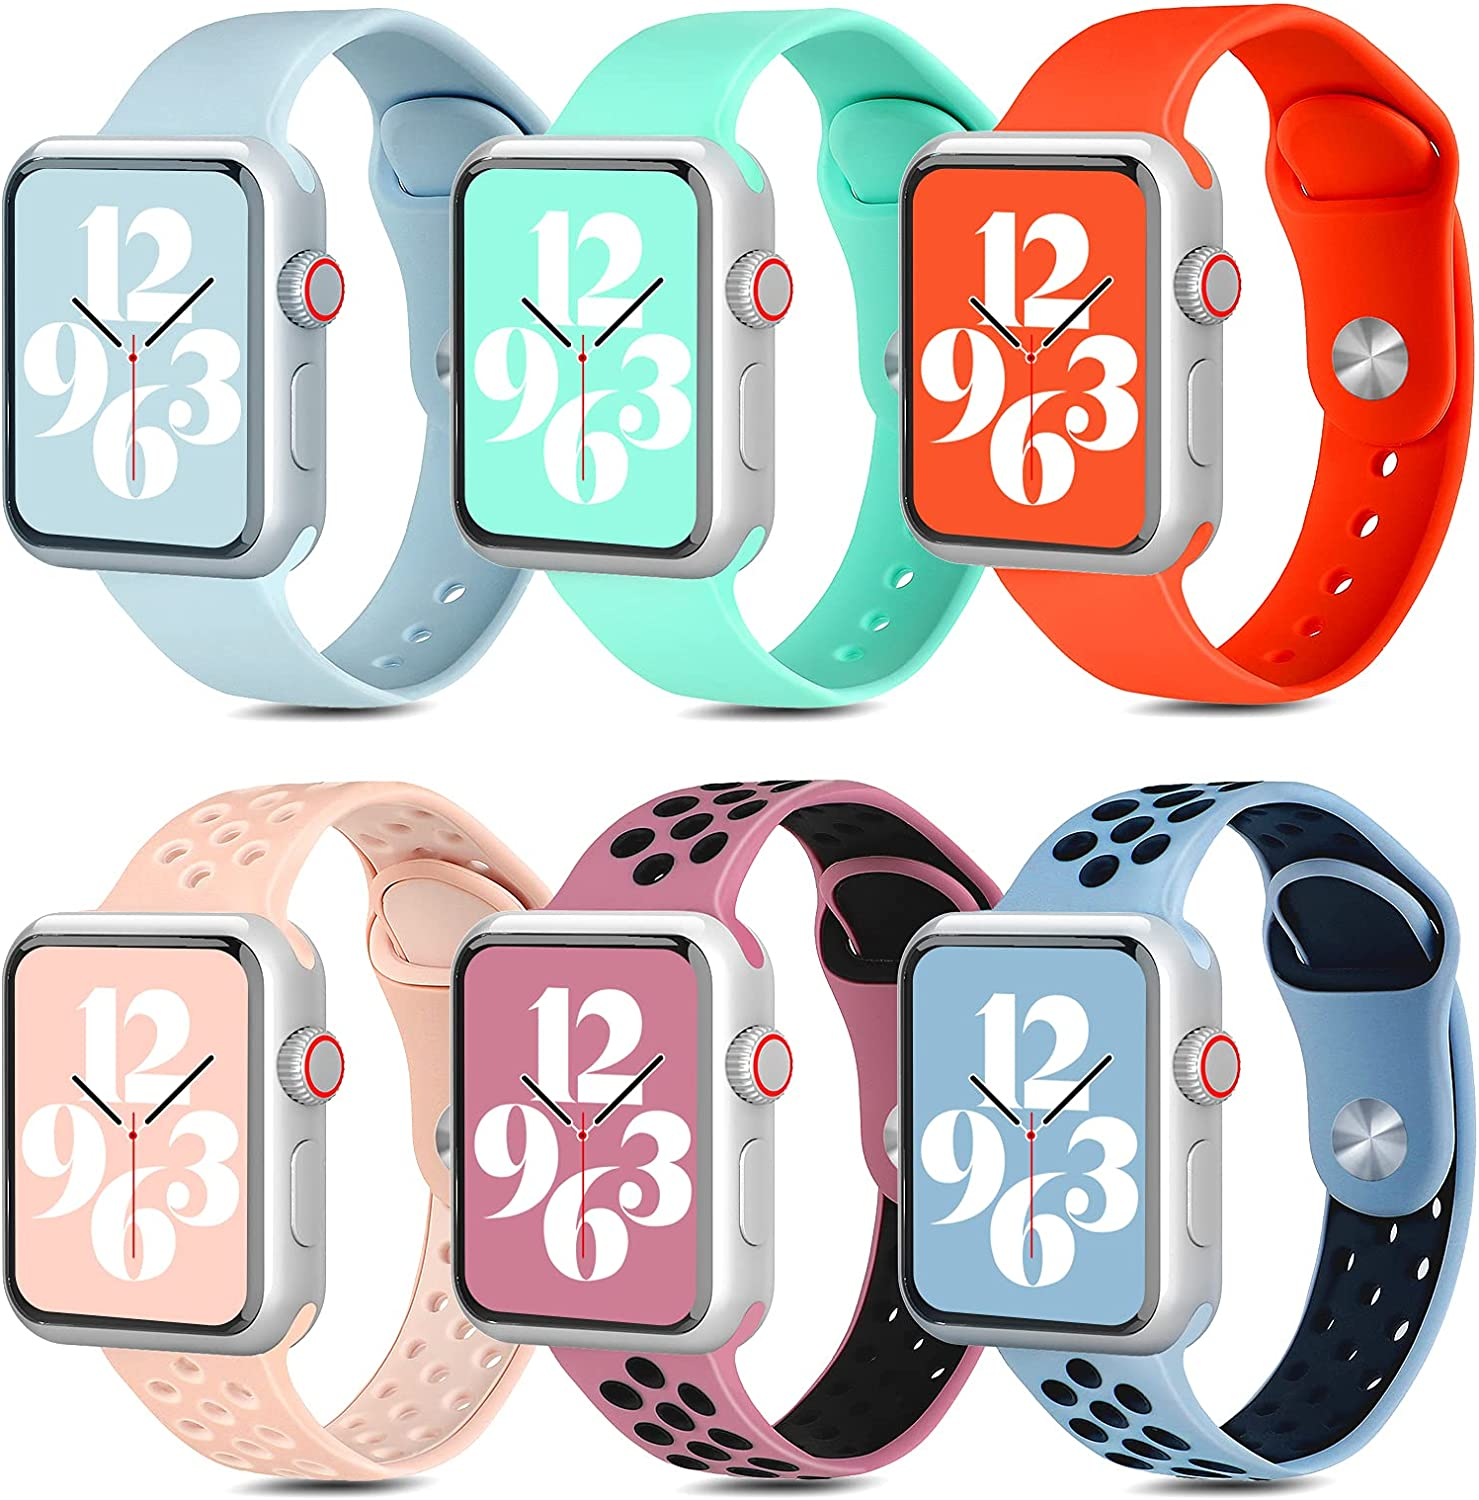 OFFTESTY 6 Pack Sport Bands Compatible with Apple Watch Band 38mm 40mm 42mm 44mm, Soft Silicone Apple Watch Strap Replacement for iWatch SE / Series 6/5/4/3/2/1